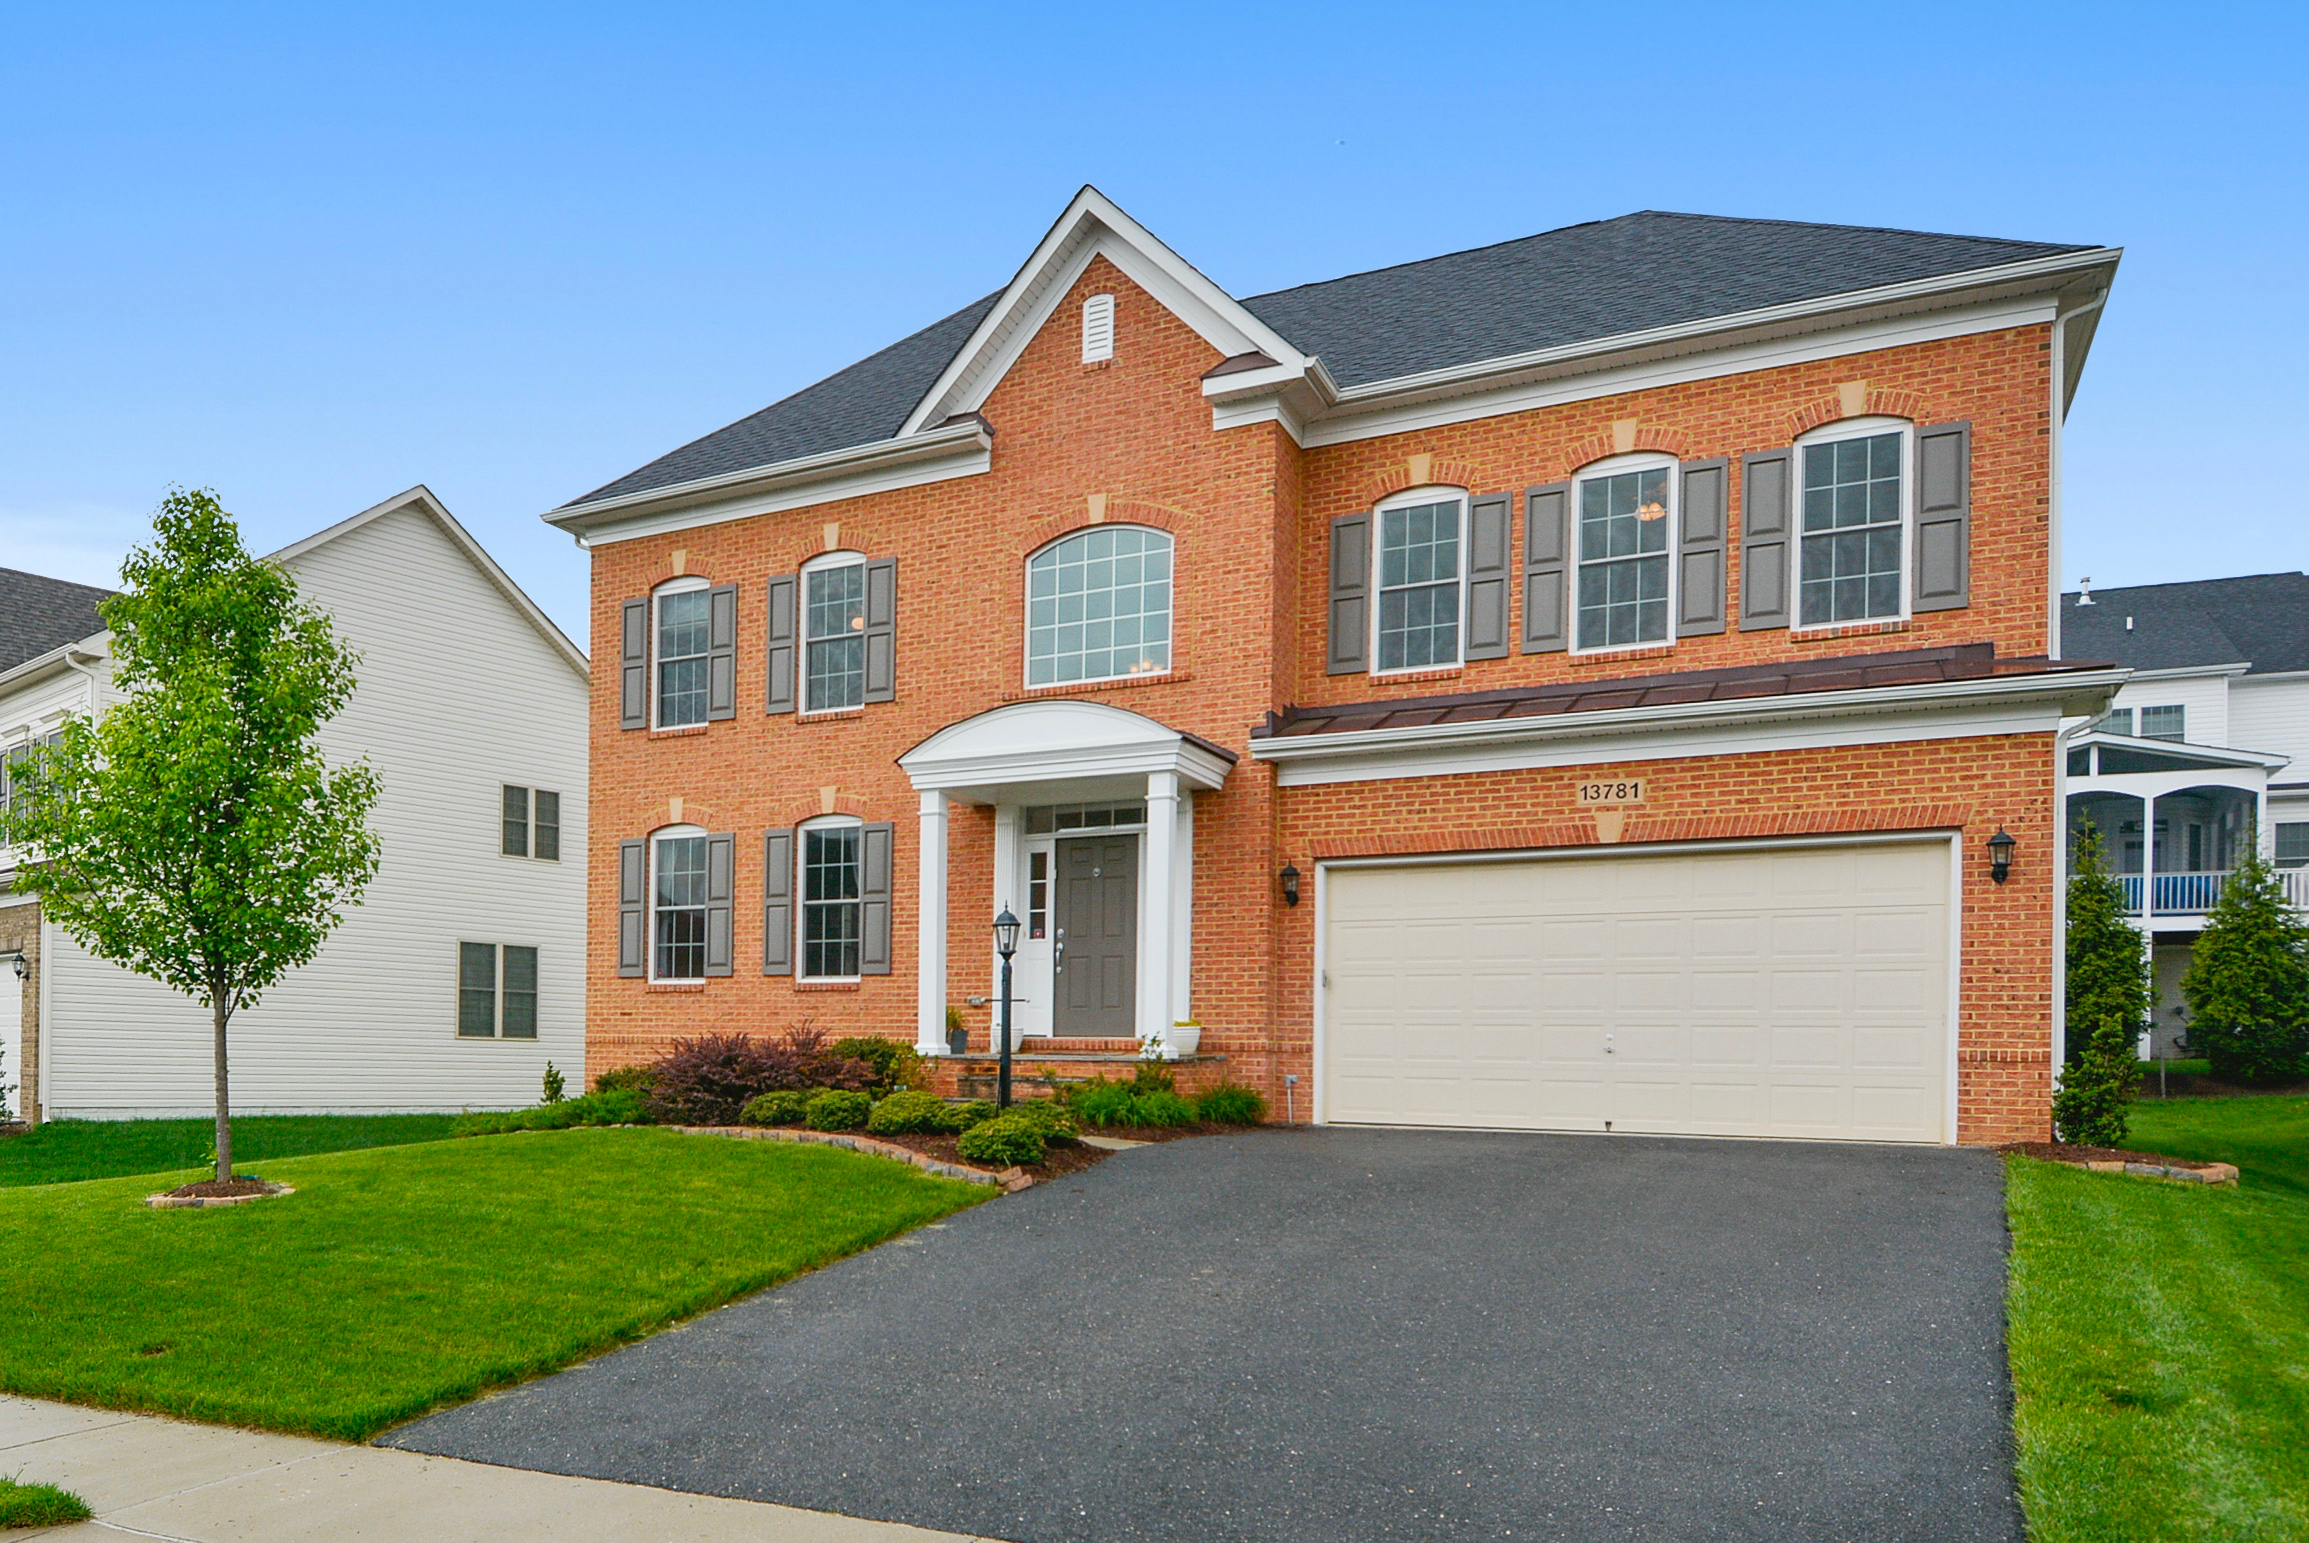 Sold Listing - Silver Spring, MD